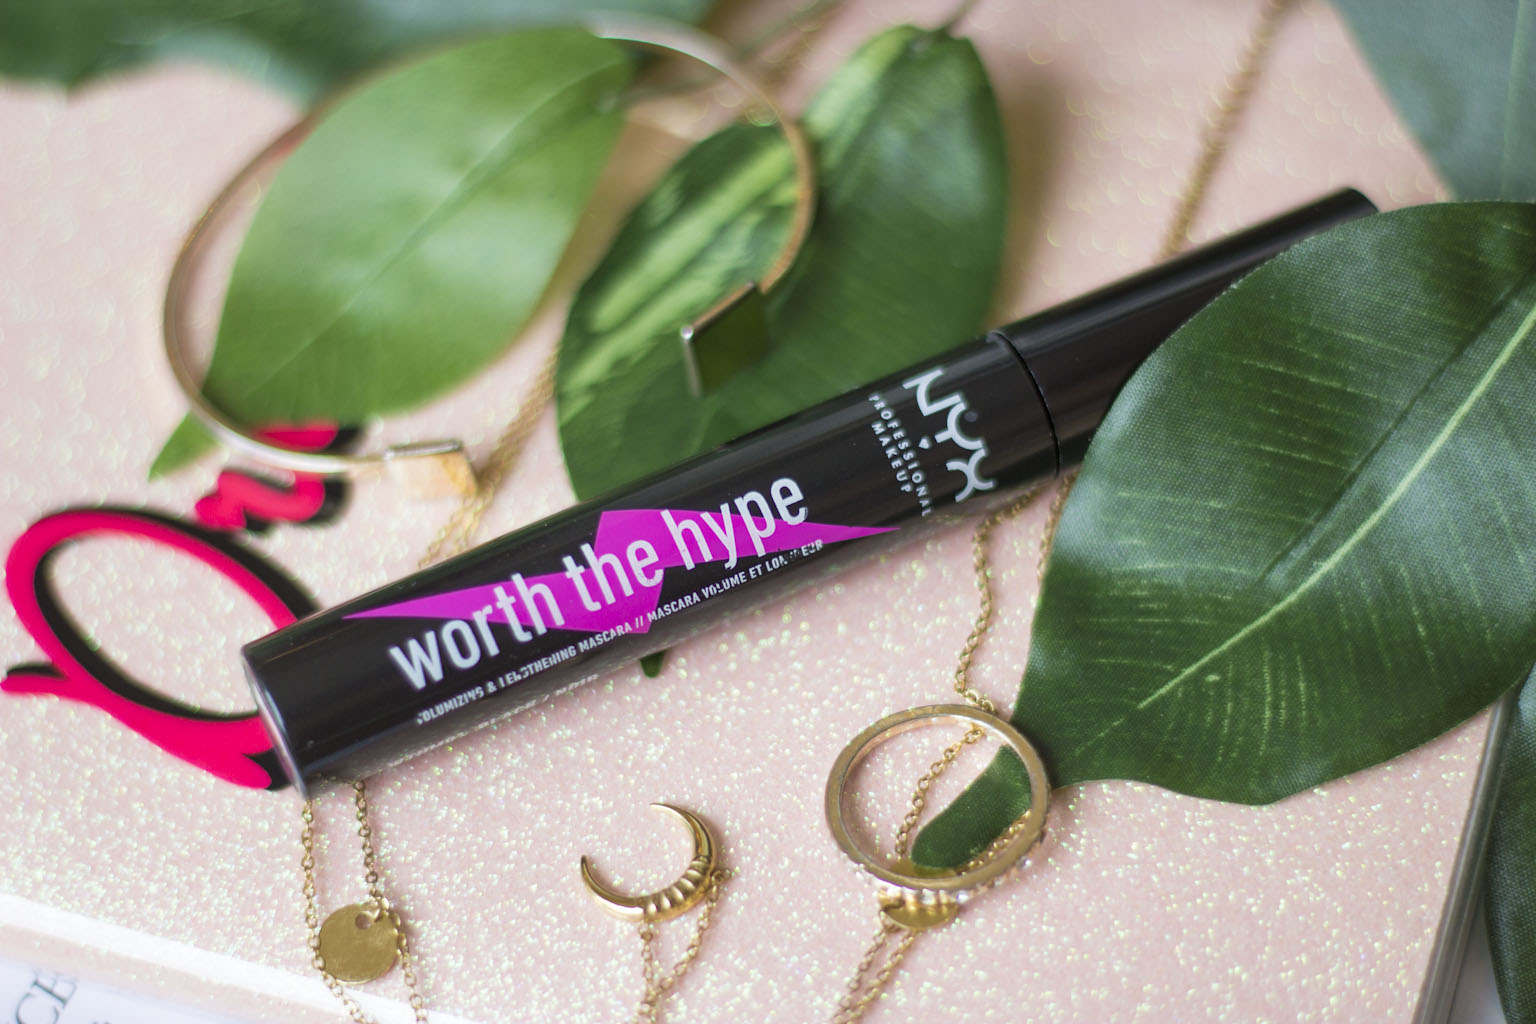 Hype Mascara About Heart Mon Avis I The Worth Nyx What 9EY2eHWDI